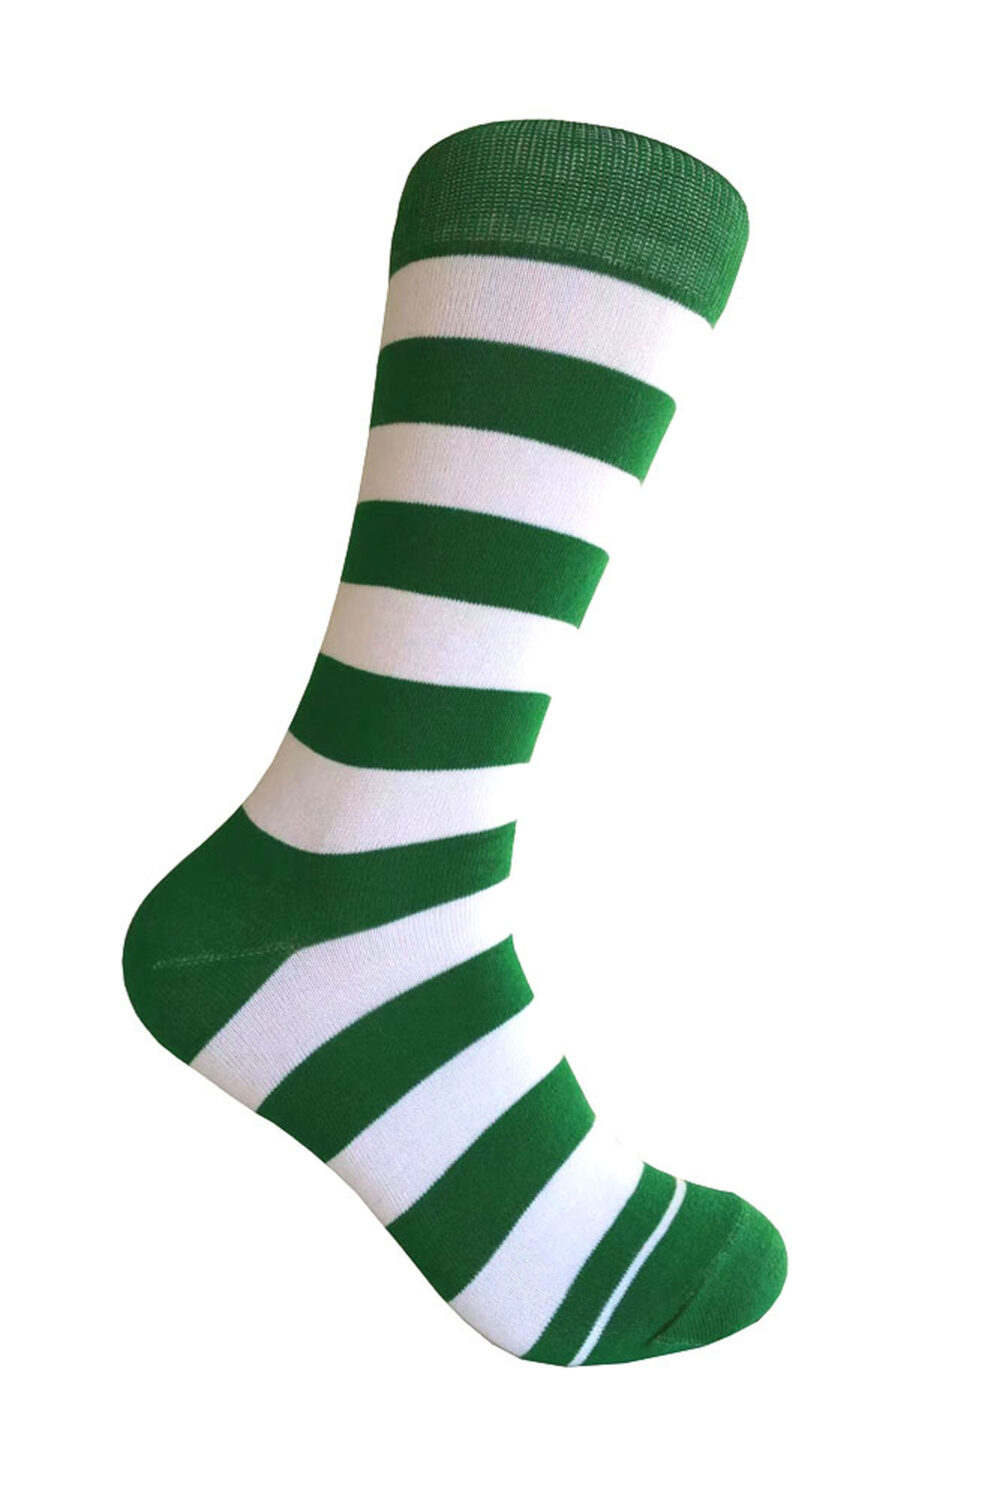 Novelty Men's Green With Multi-Colors Stripes Mid-Calf St. Patrick's Day Costume Cosplay Bachelor Party Wedding Groomsman Gift Dress Socks